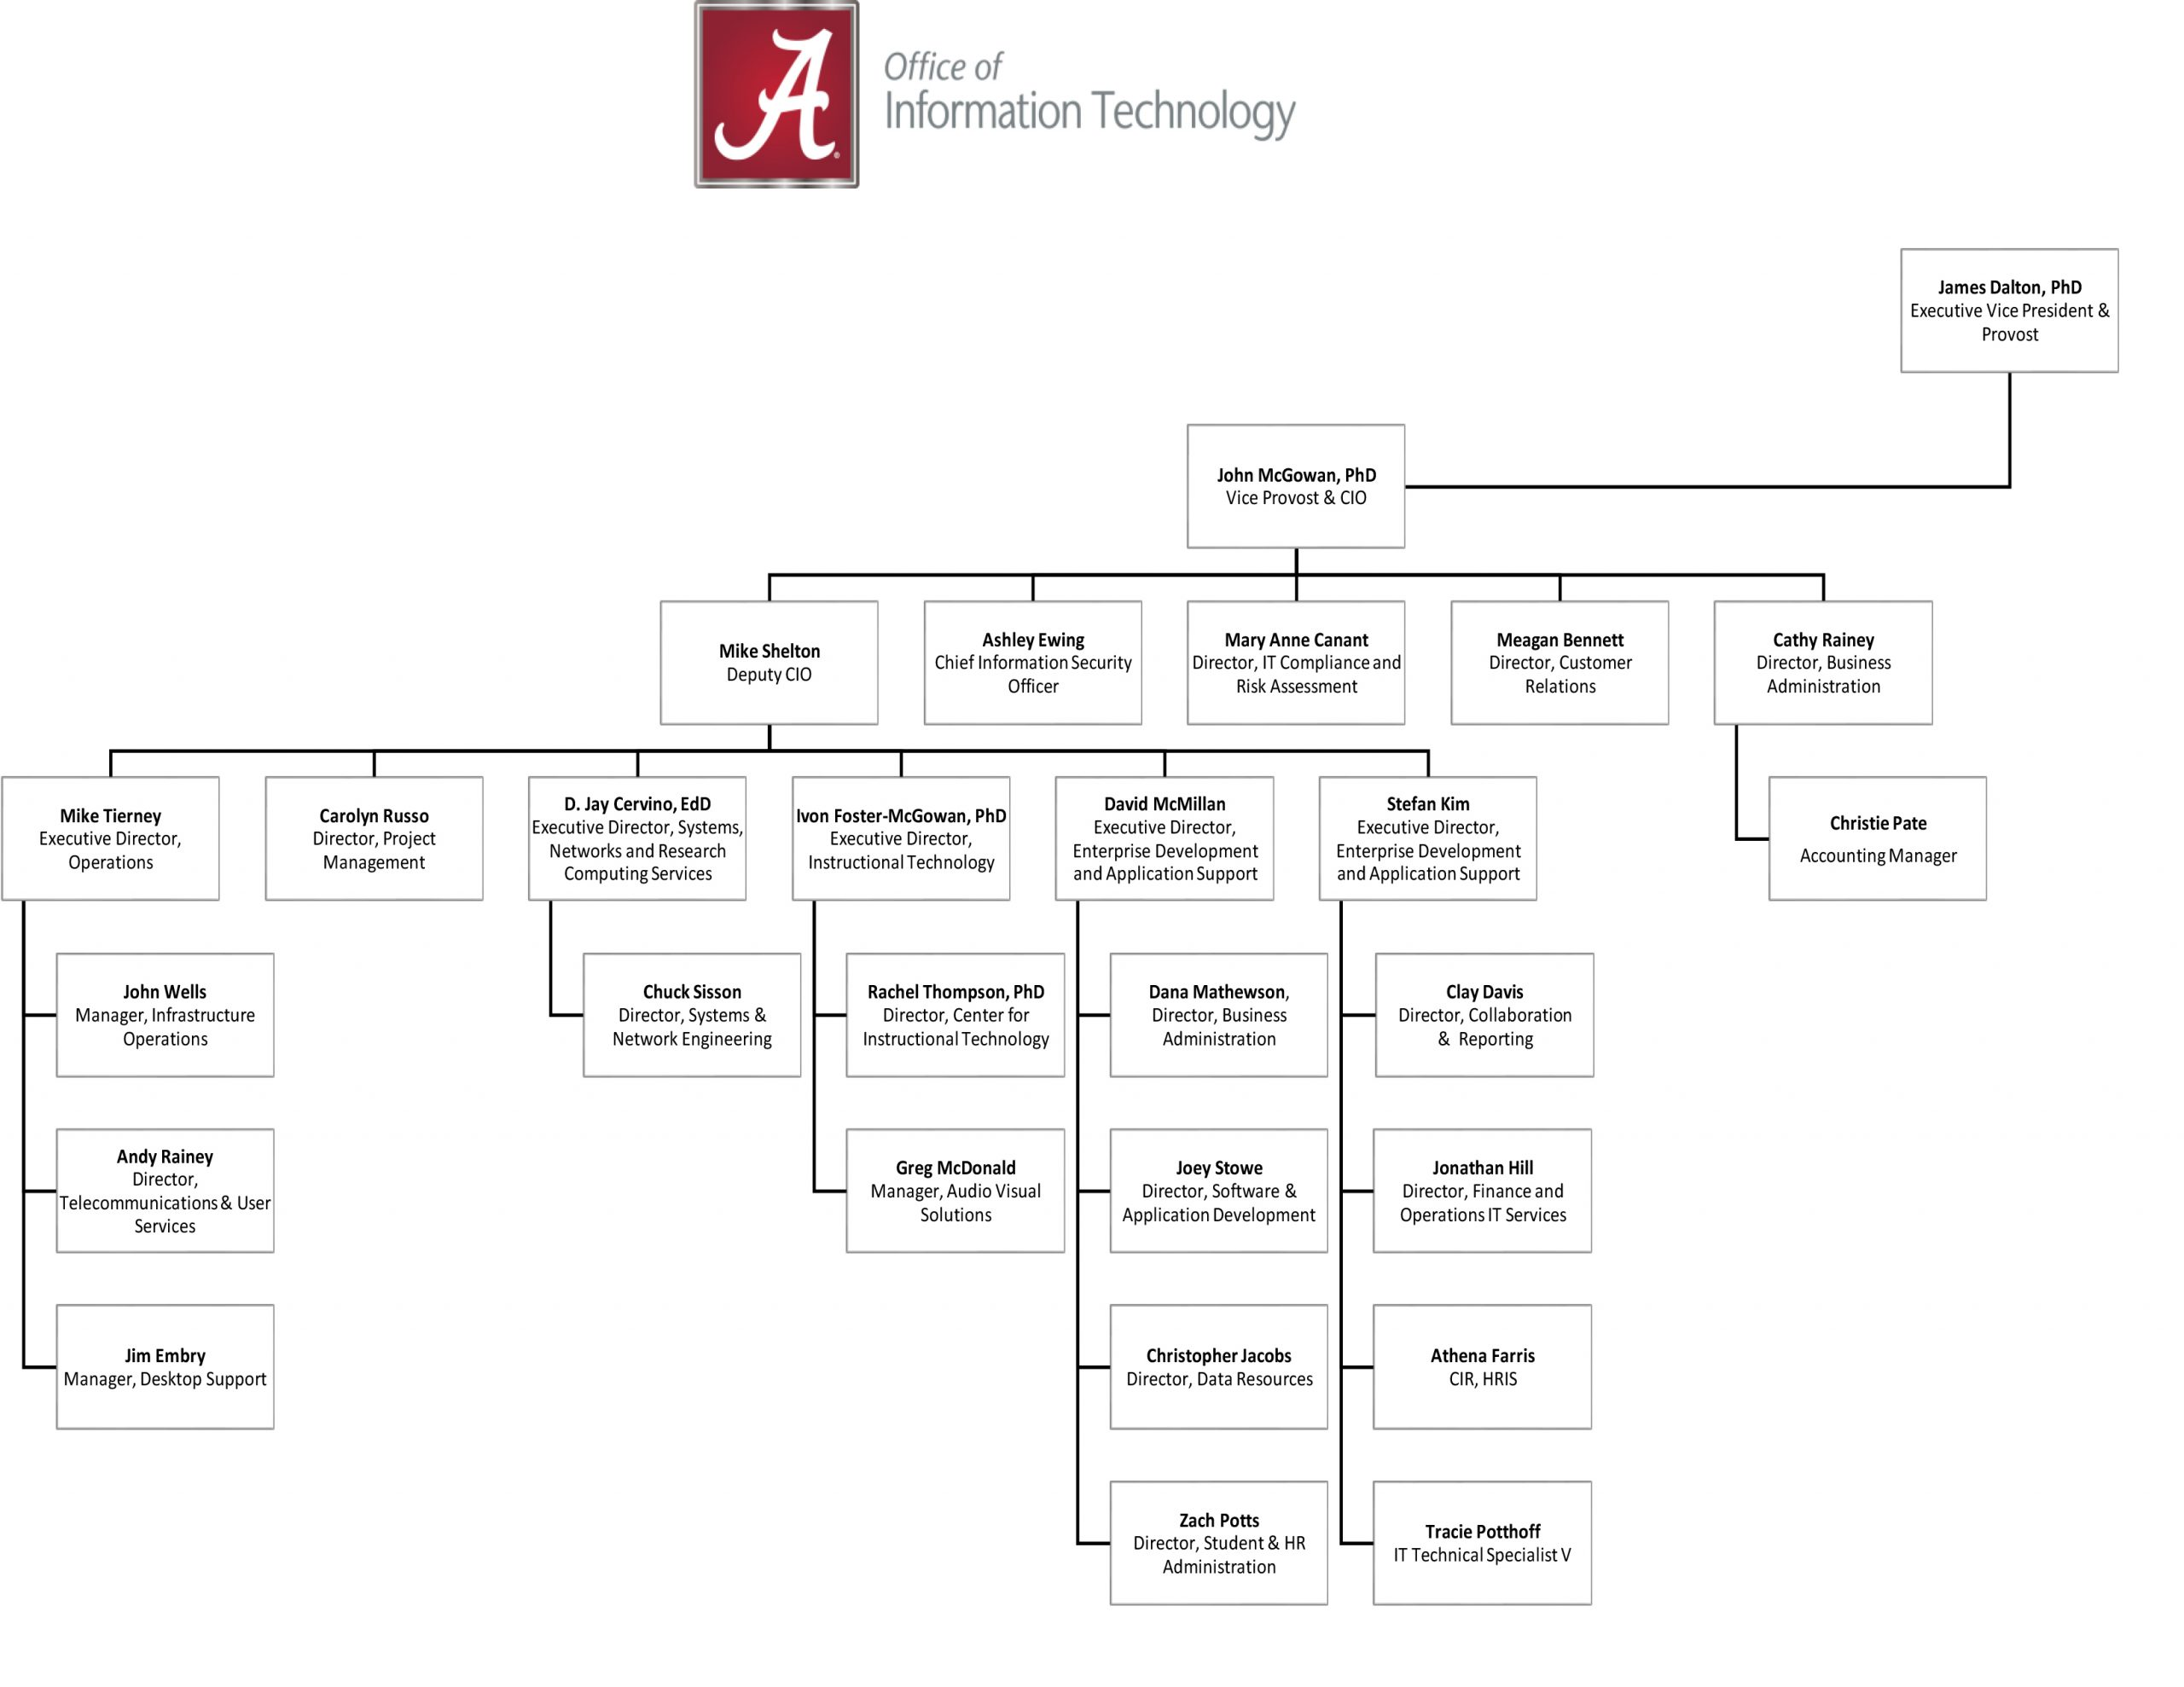 OIT org chart - see text below image for accessible content